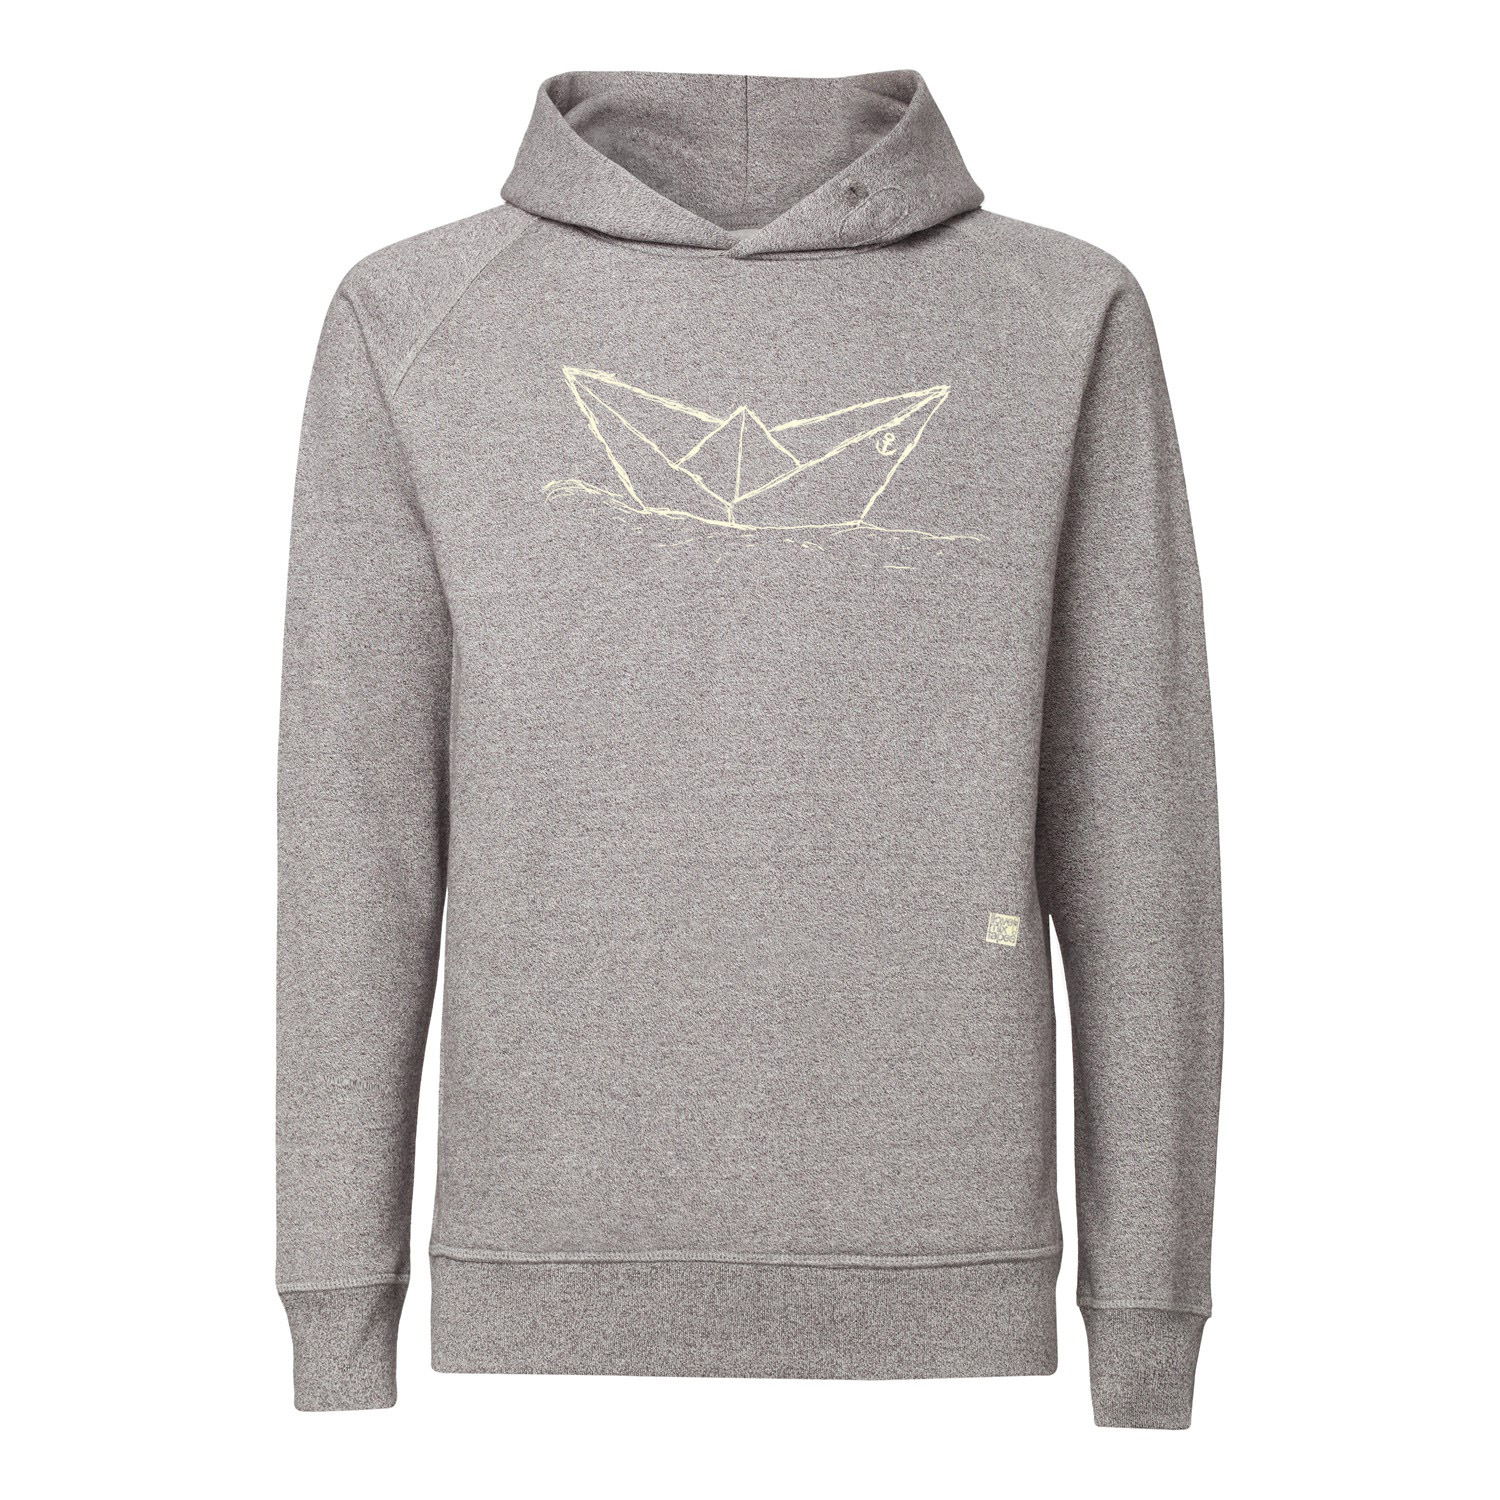 ilovemixtapes Paperboat Kapuzensweatshirt creme/heather stone